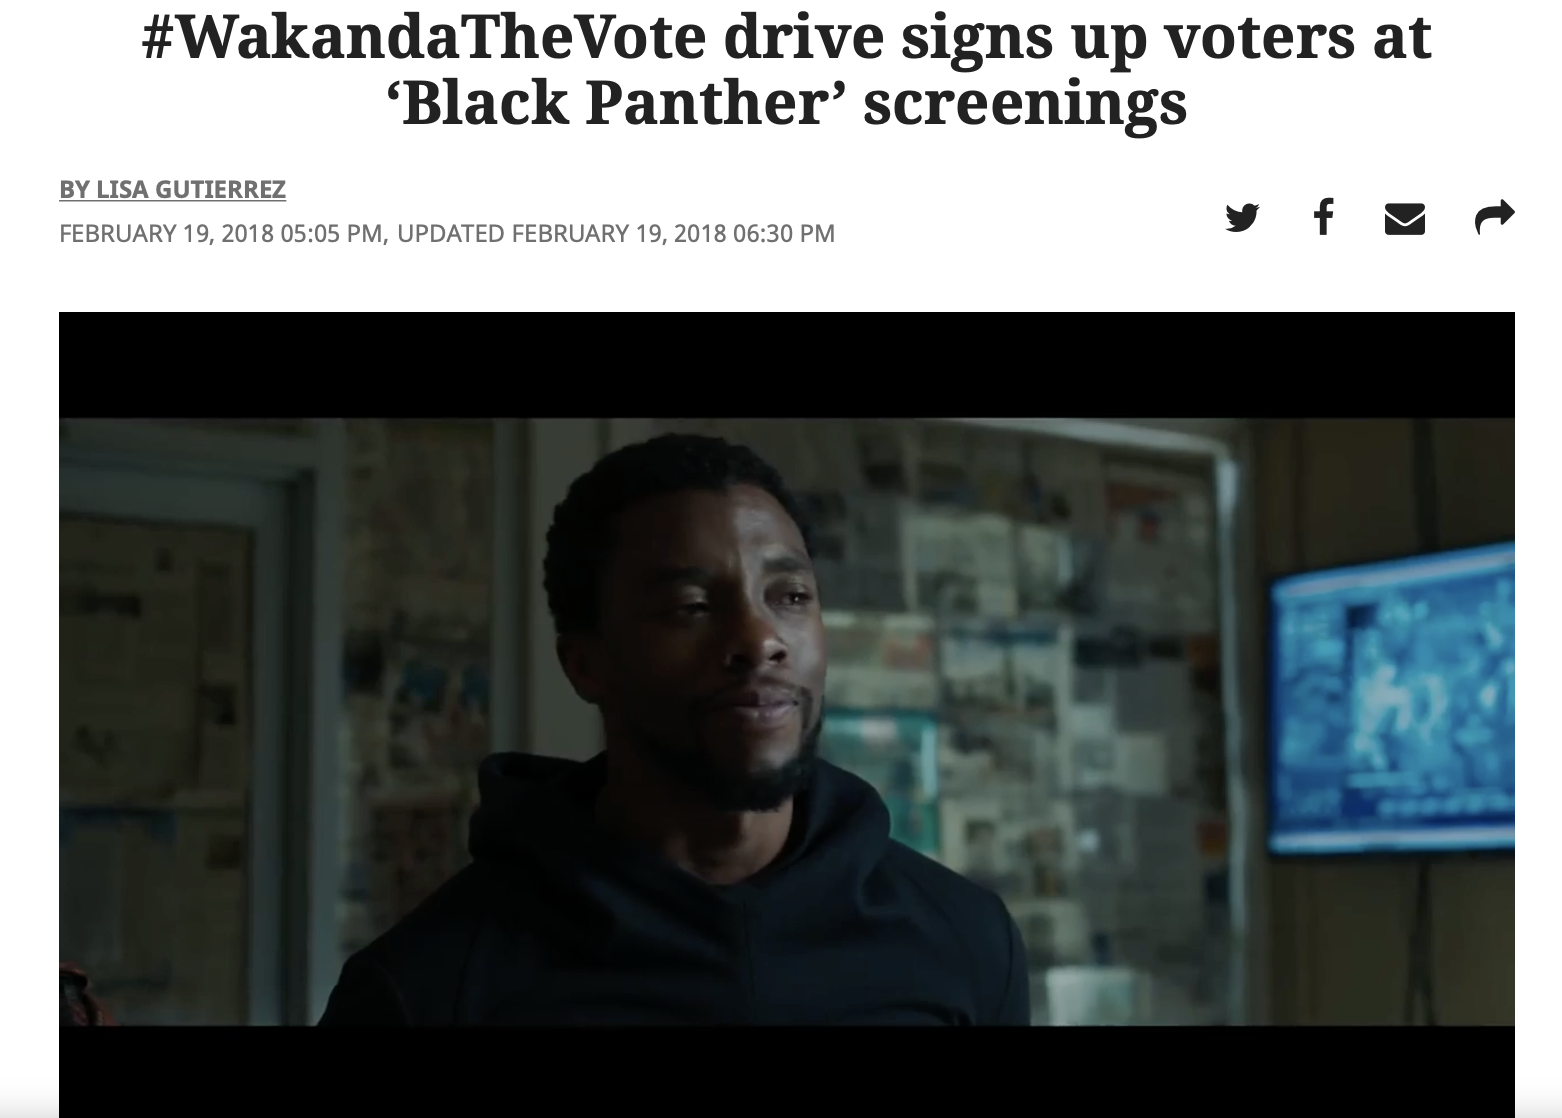 #WakandaTheVote drive signs up voters at 'Black Panther' screenings